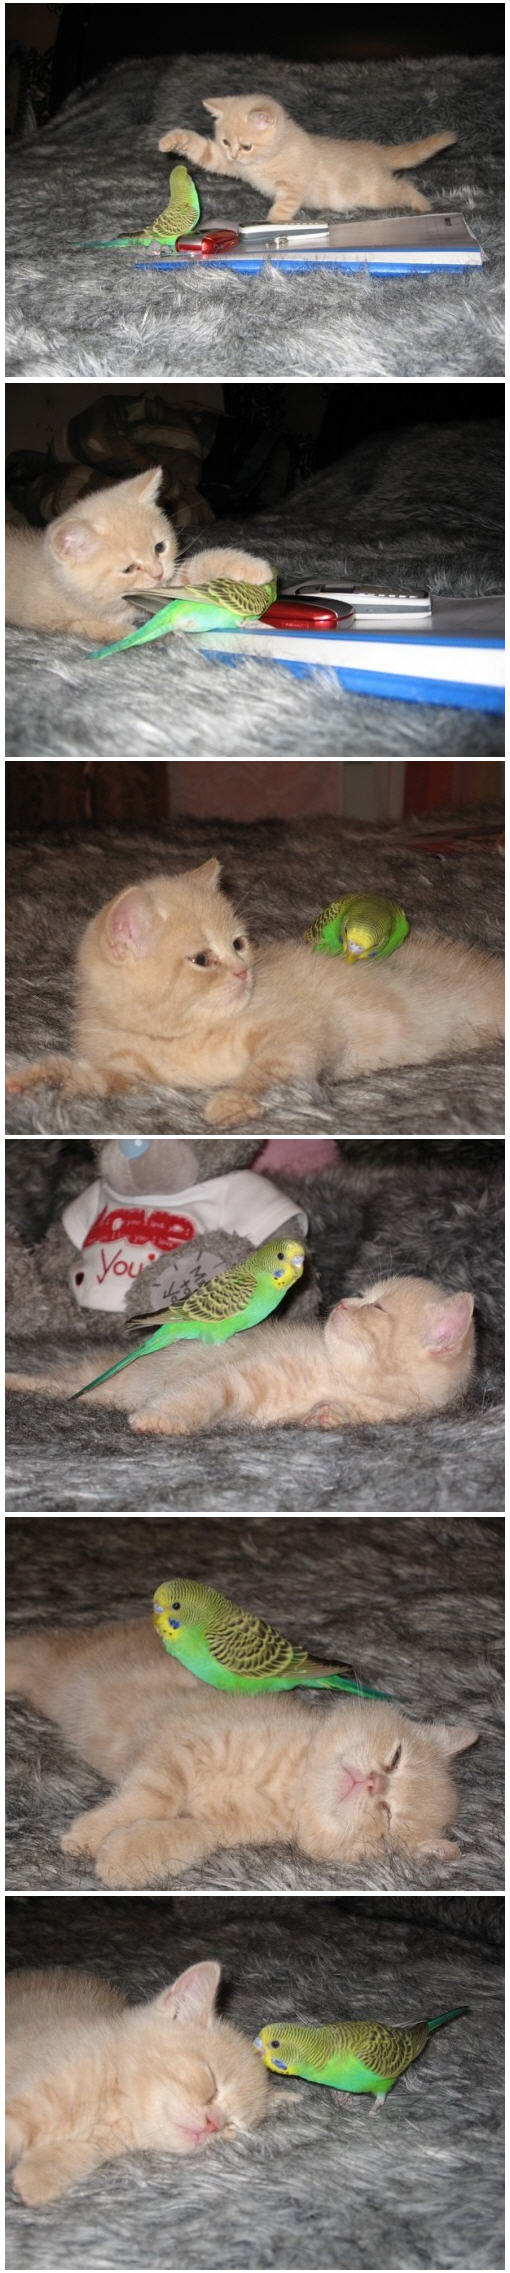 Kitty Tamed by Bird